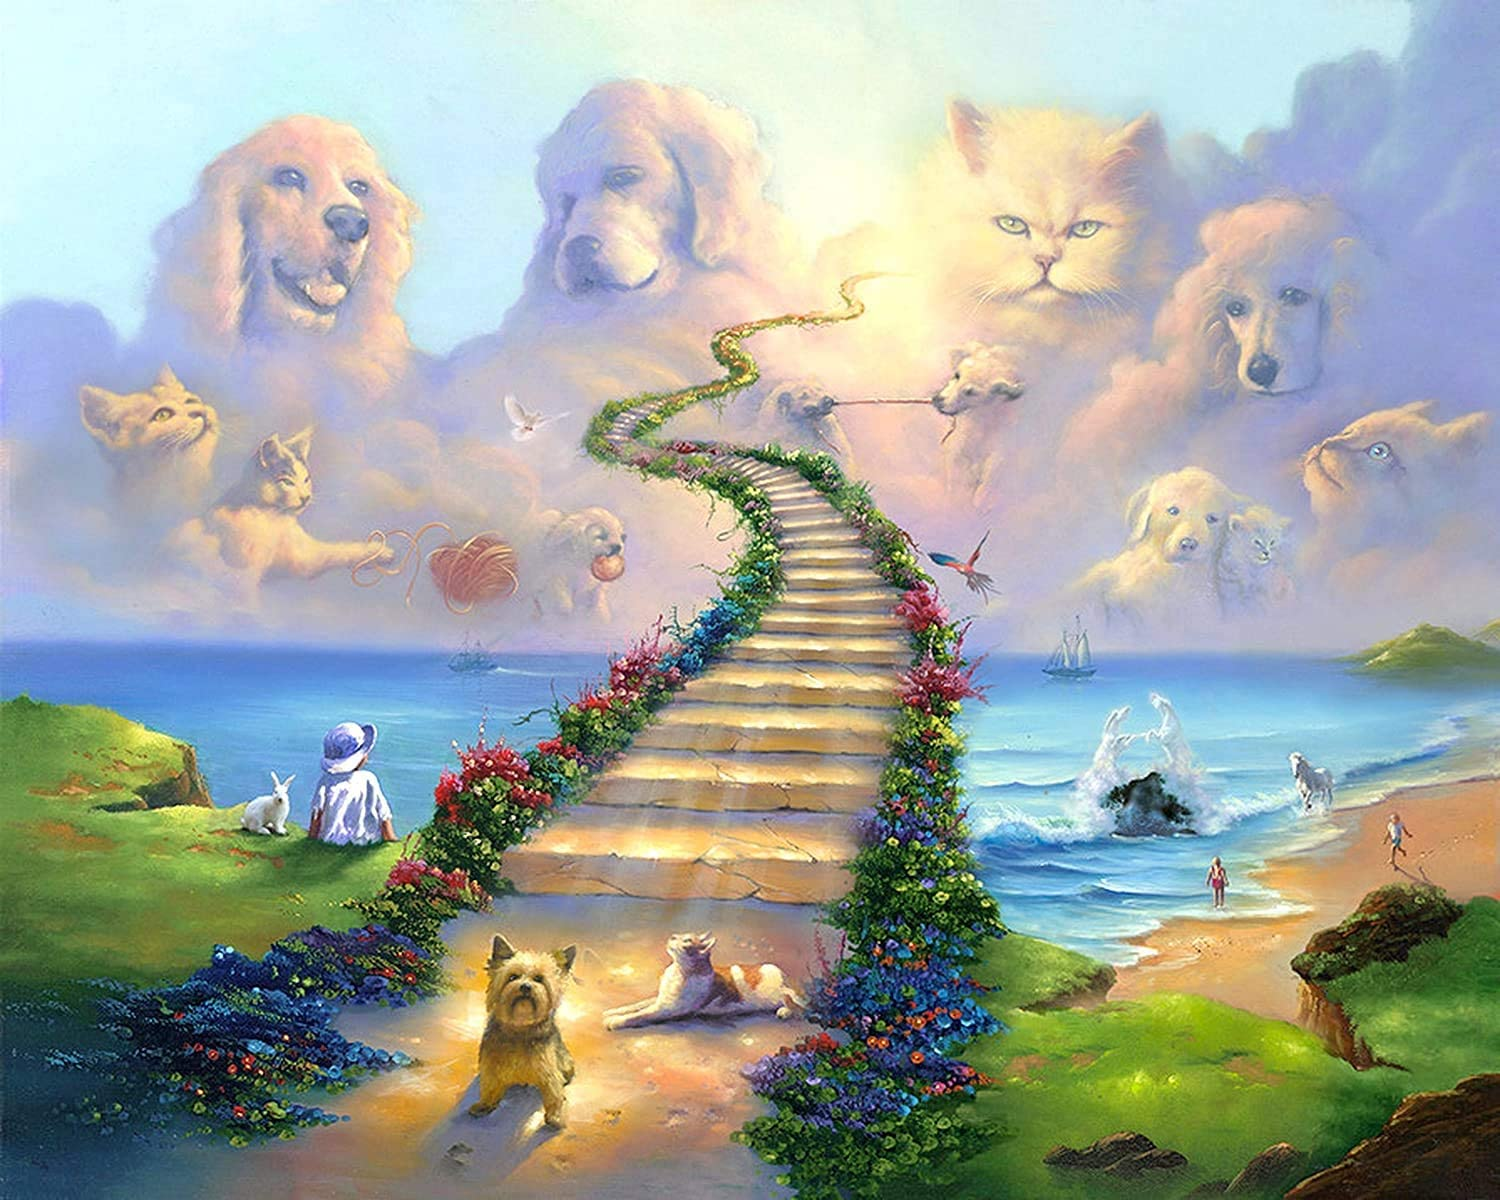 Rainbow Bridge All Pets Go Stairway To Heaven Canvas Wall Art Prints Home Decor Painting for Bedroom Living Room (Unframed,16x20inch)